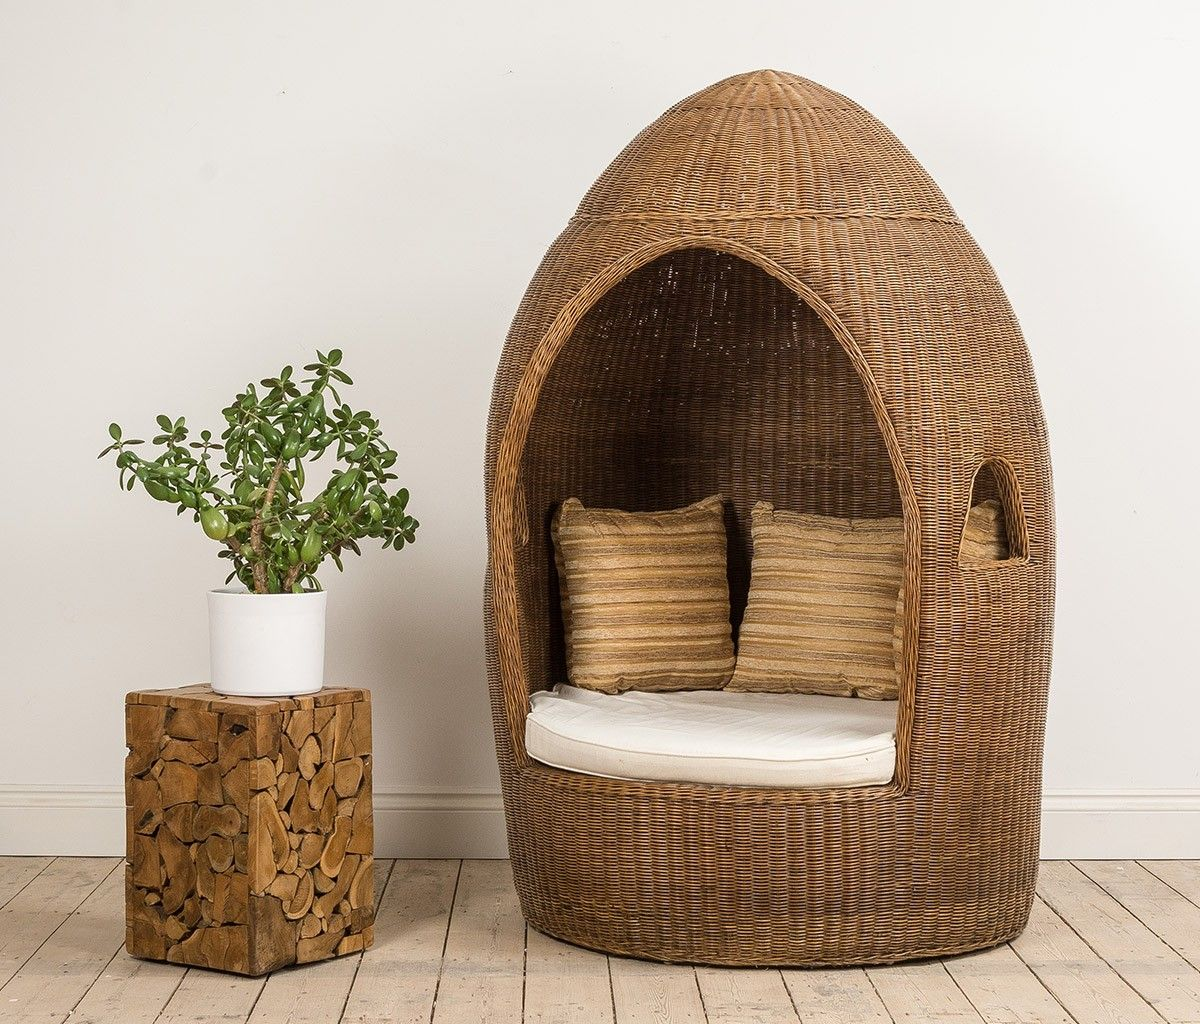 Wicker Egg Chairs Rattan Chairs Contemporary Rattan Furniture Rattan Egg